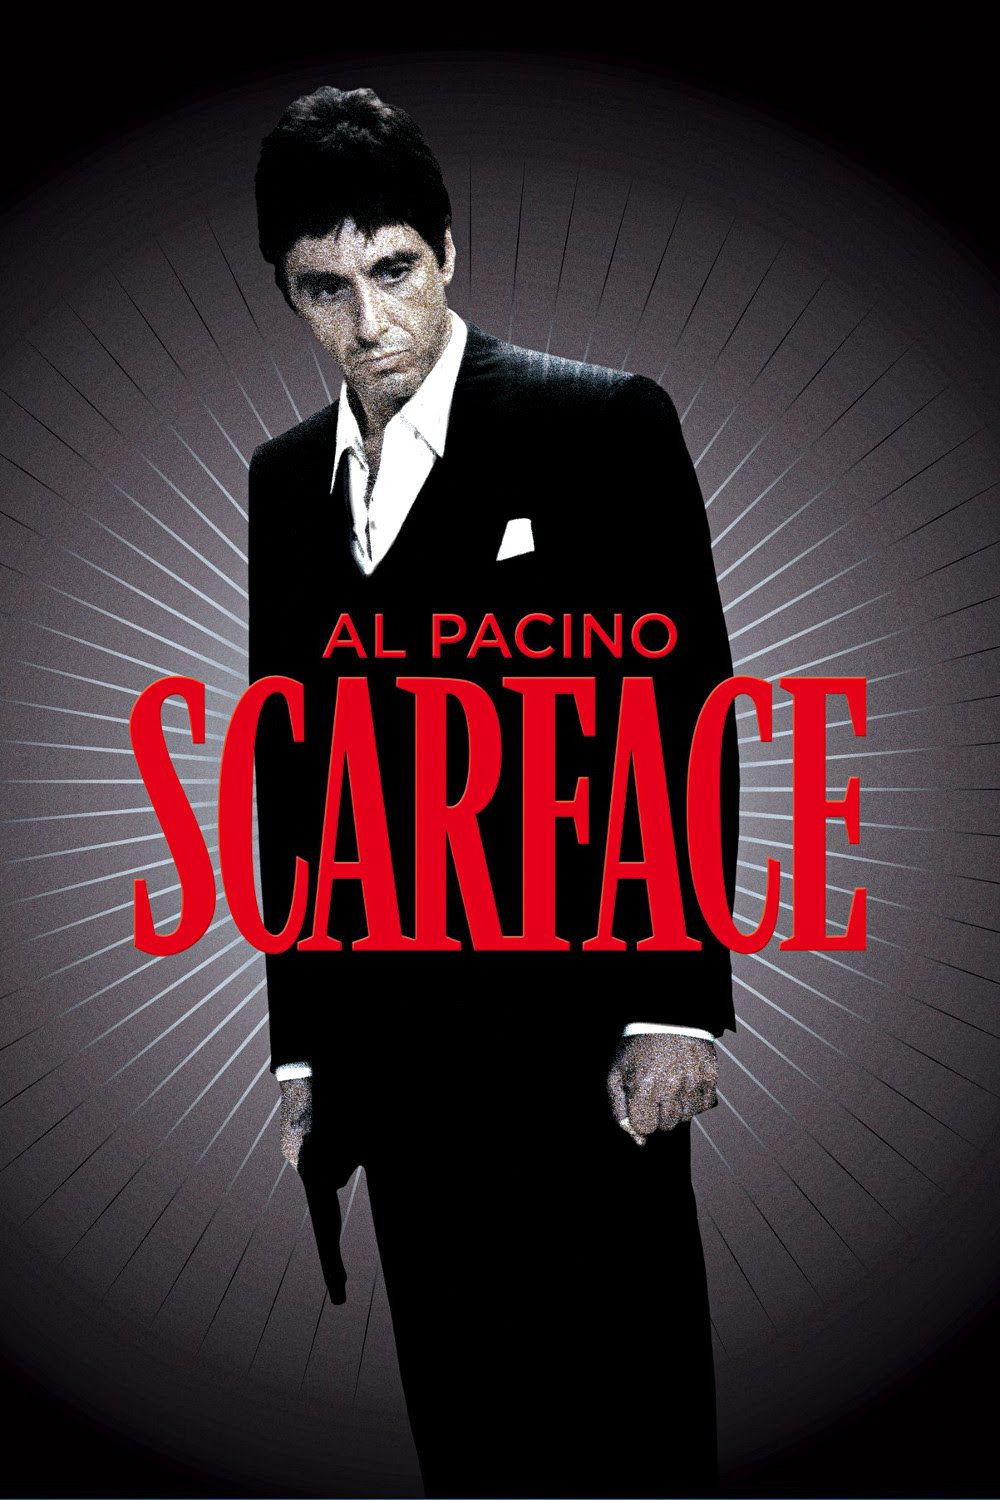 Scarface Poster Movie Poster 3 Every Dog Has Its Day Images